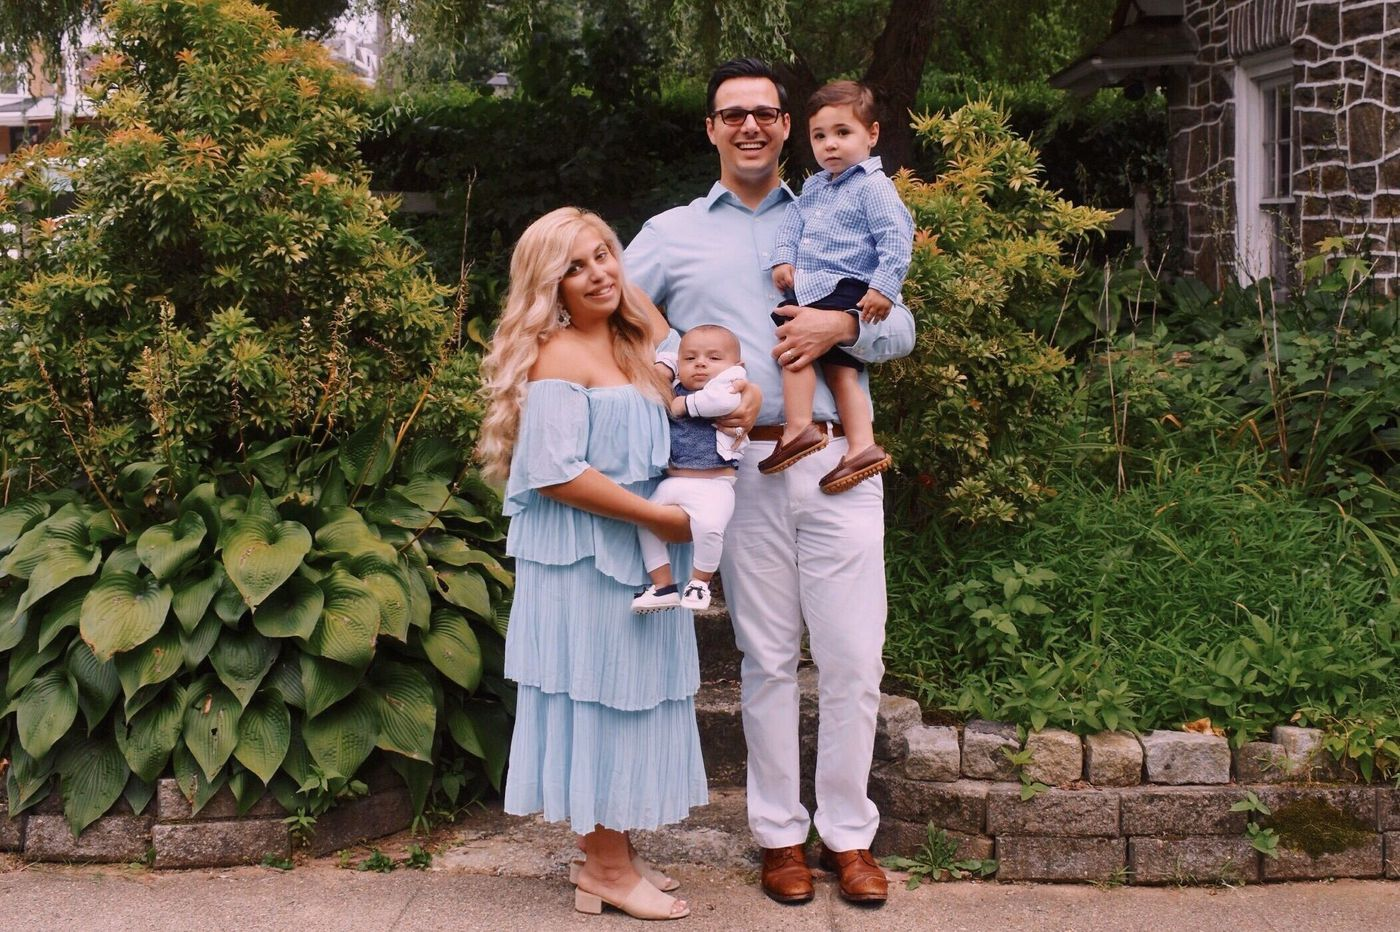 The Parent Trip: Justine and Philip Dawson of West Mount Airy